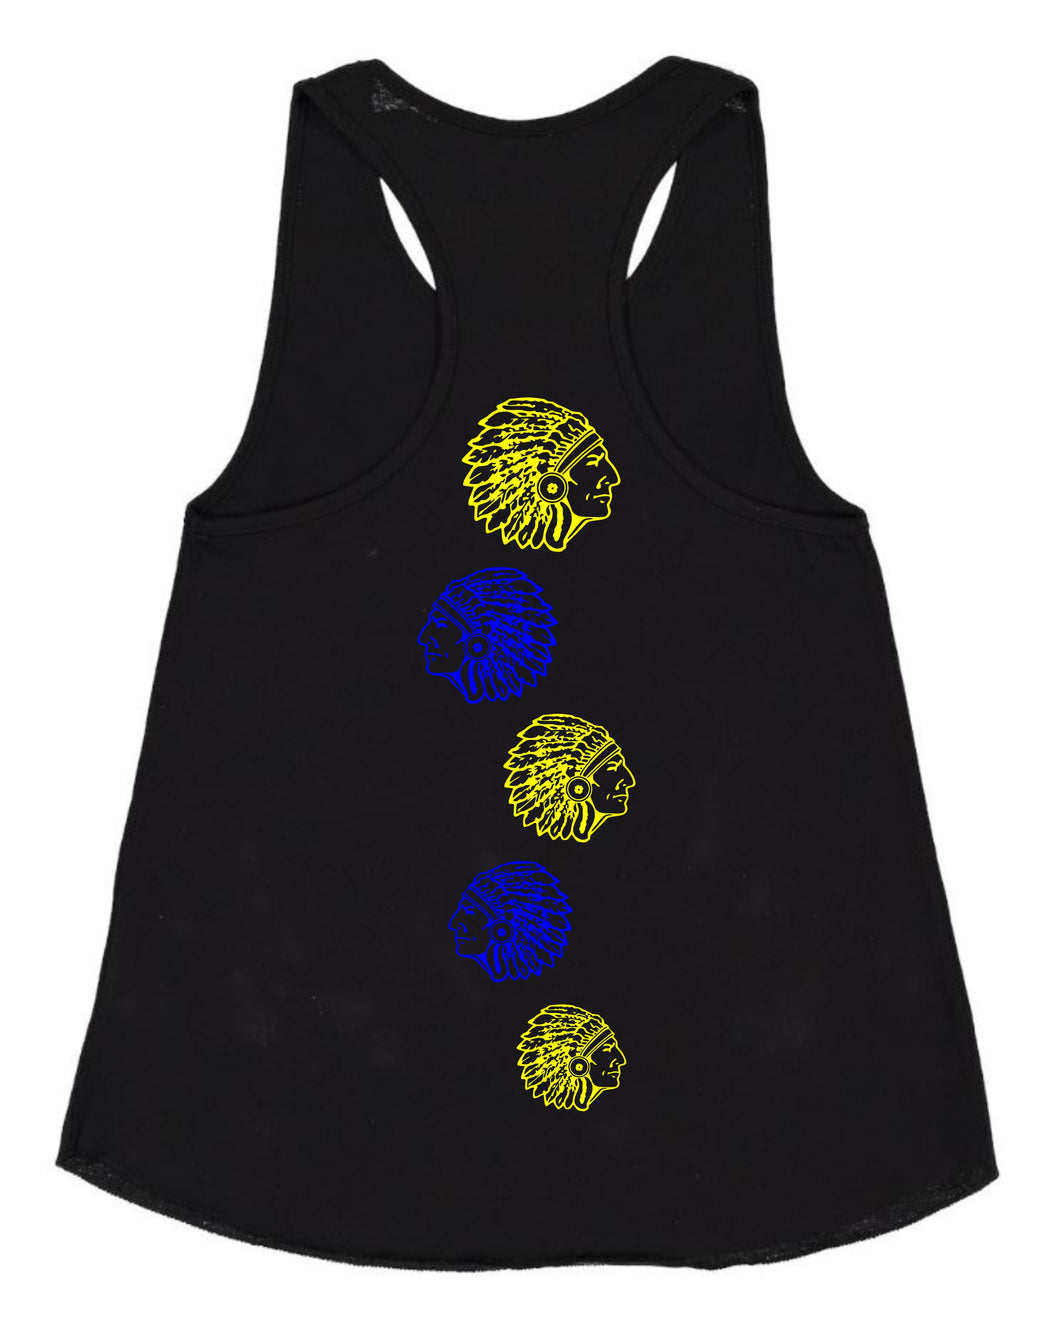 Warrior Tank, Black Youth